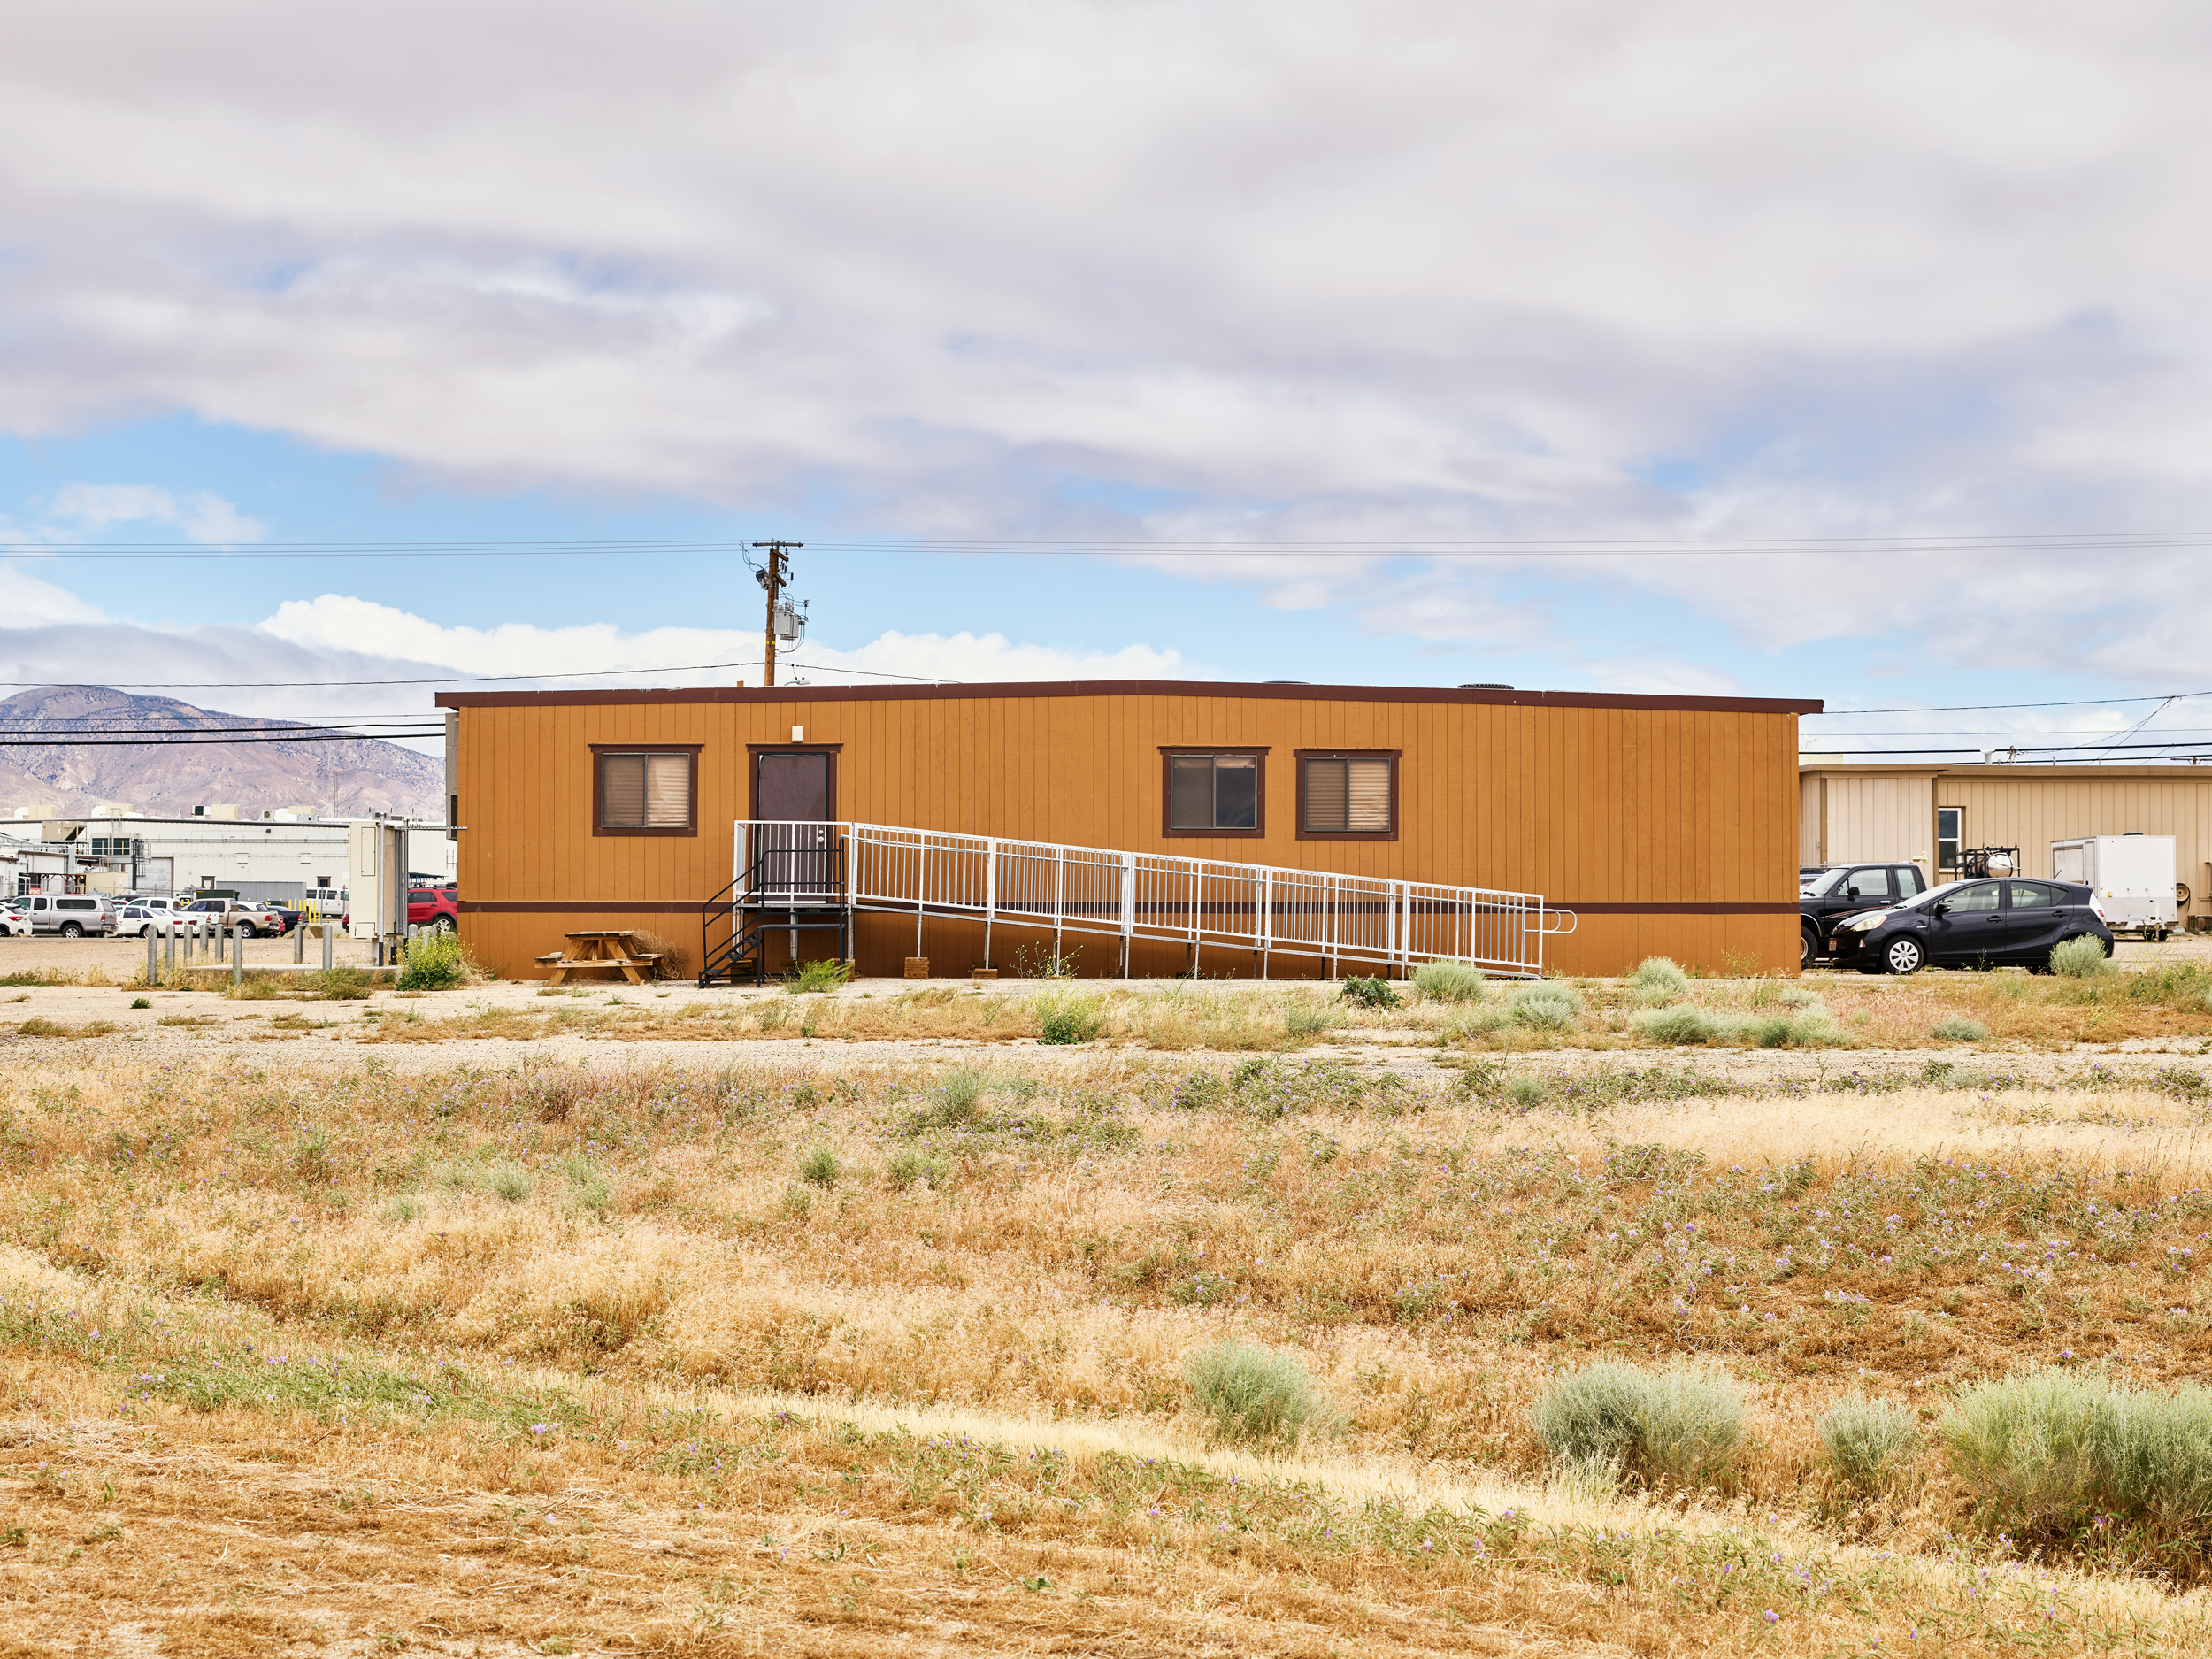 The Masten offices, in a quadruple-wide trailer an hour and a half from LA.